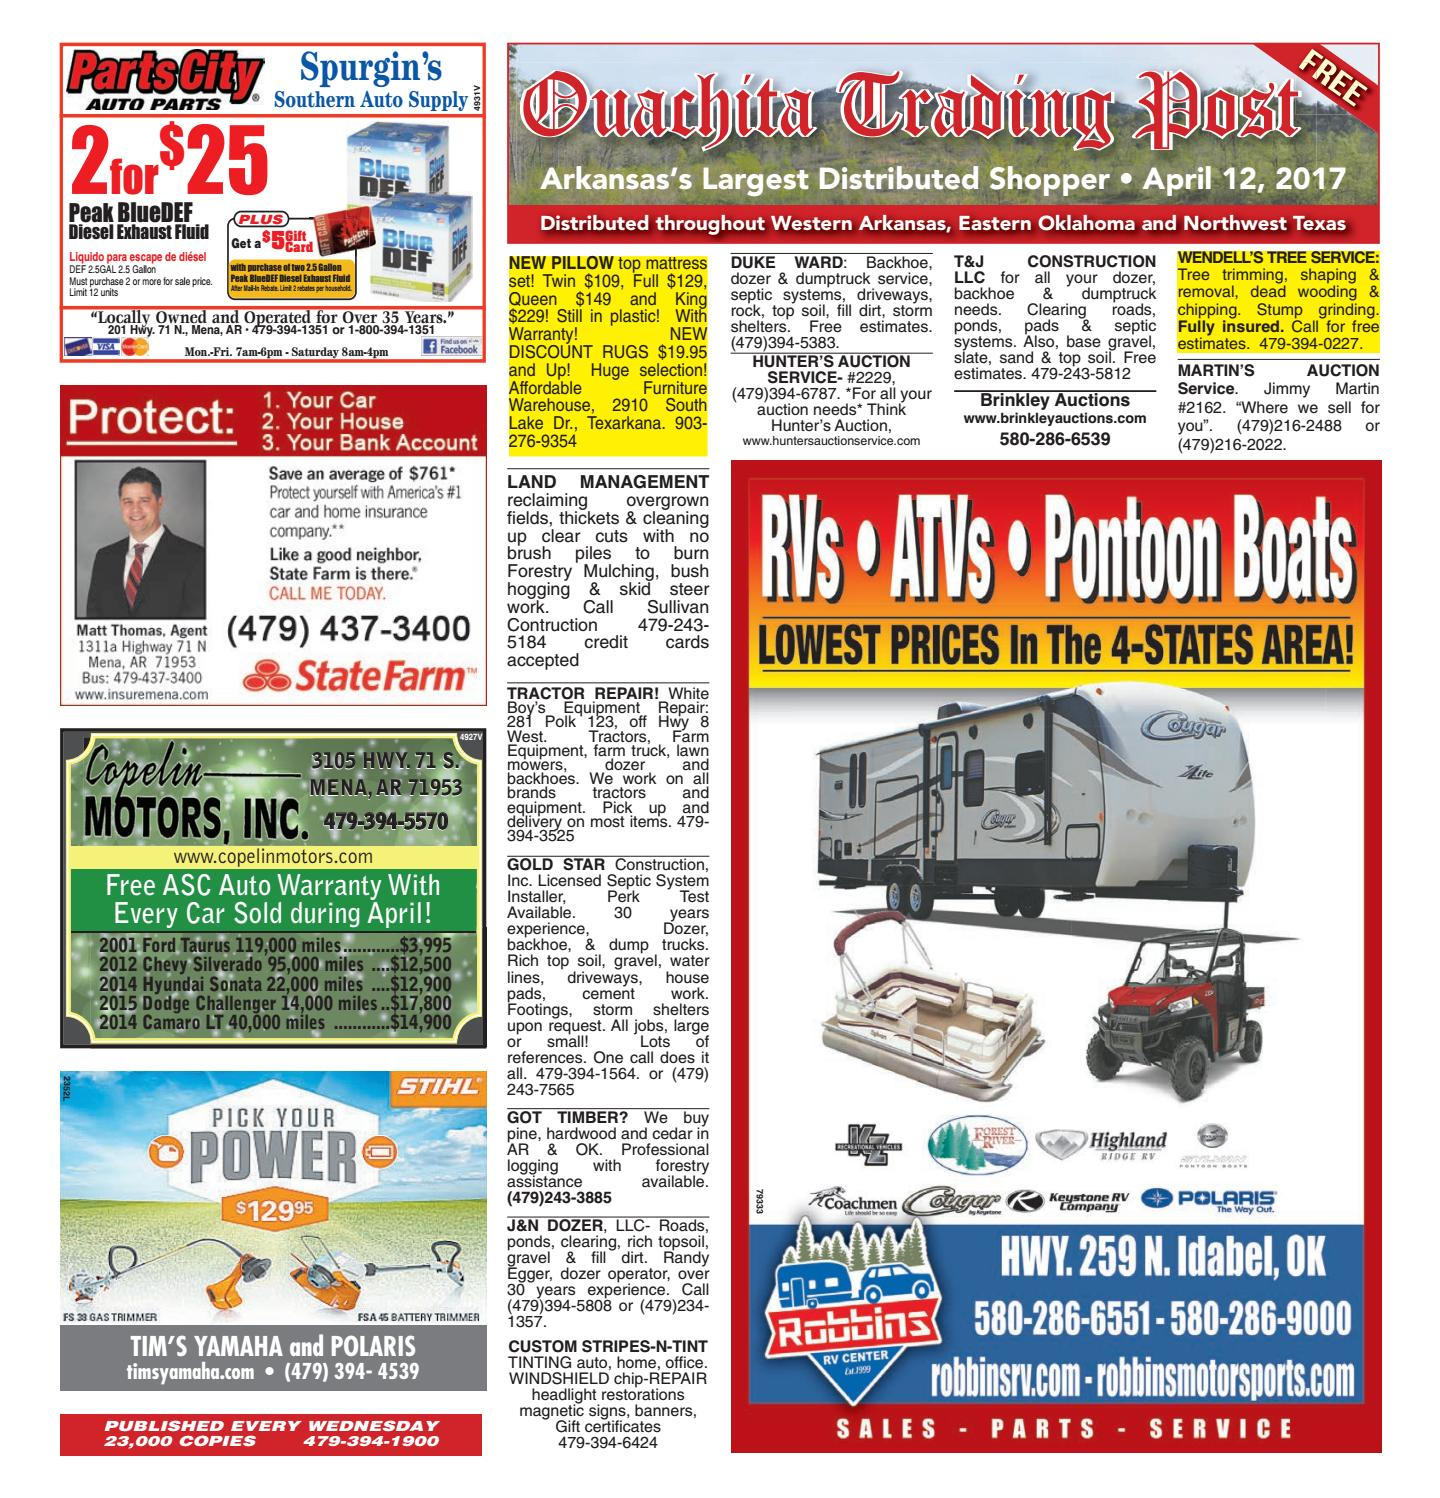 Ouachita trading post april 12 2017 by mena newspapers for Affordable furniture warehouse texarkana